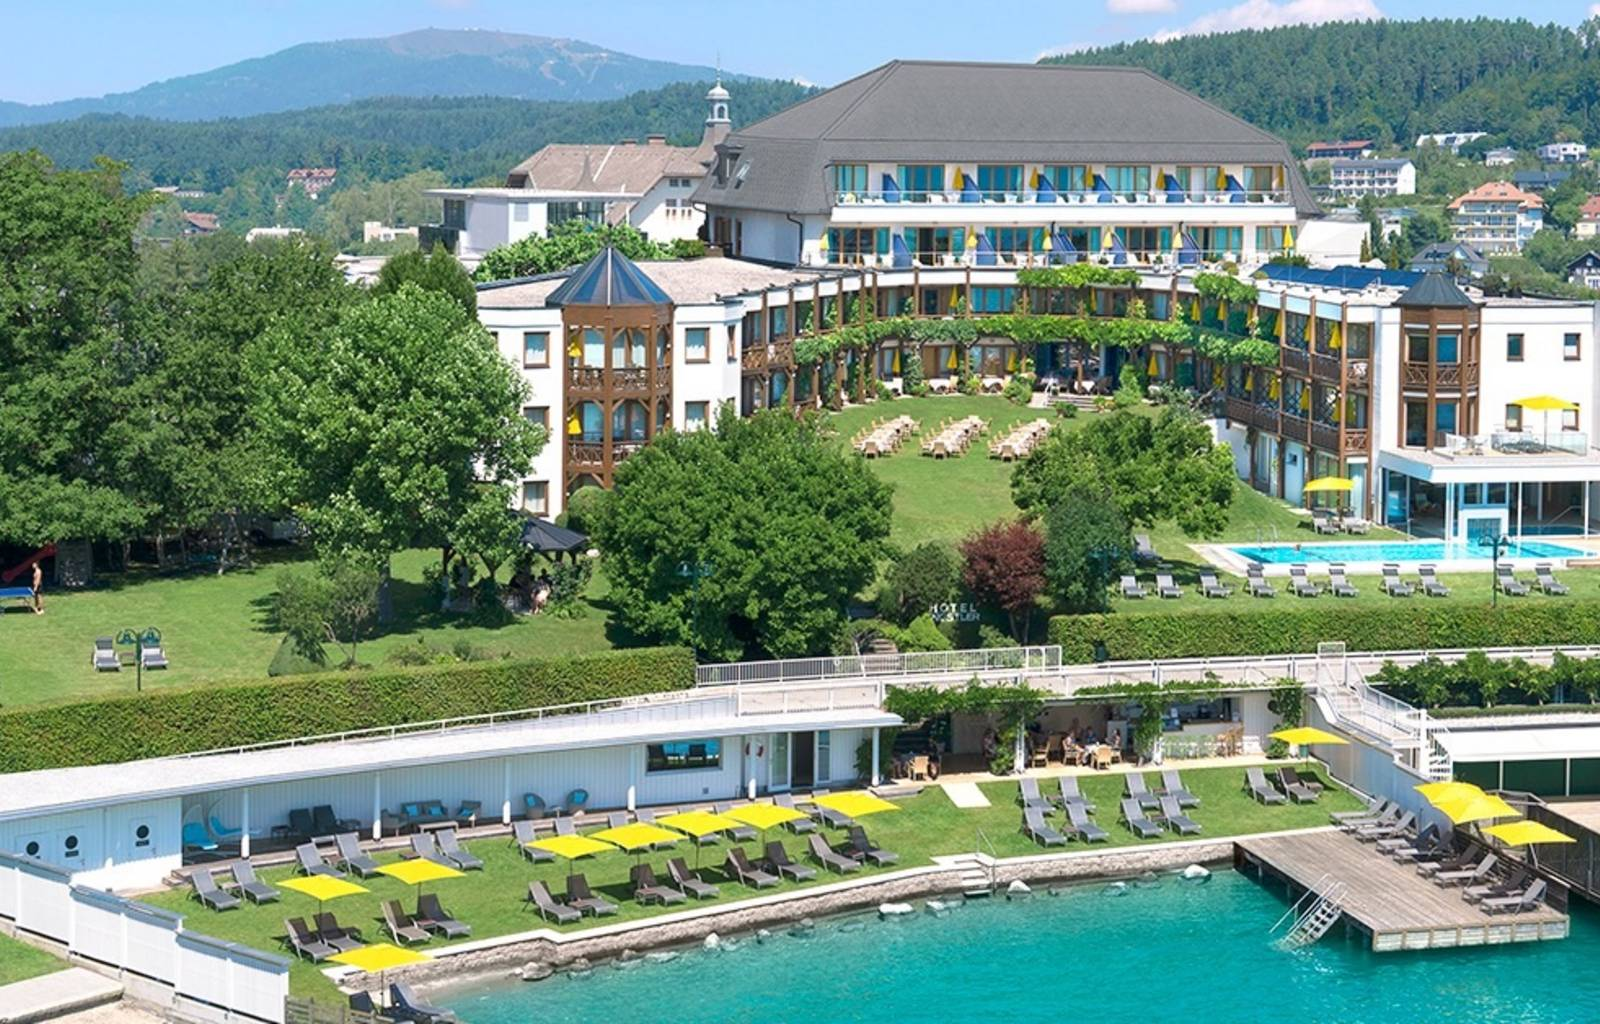 Seehotel Engstler in Velden am Wörthersee